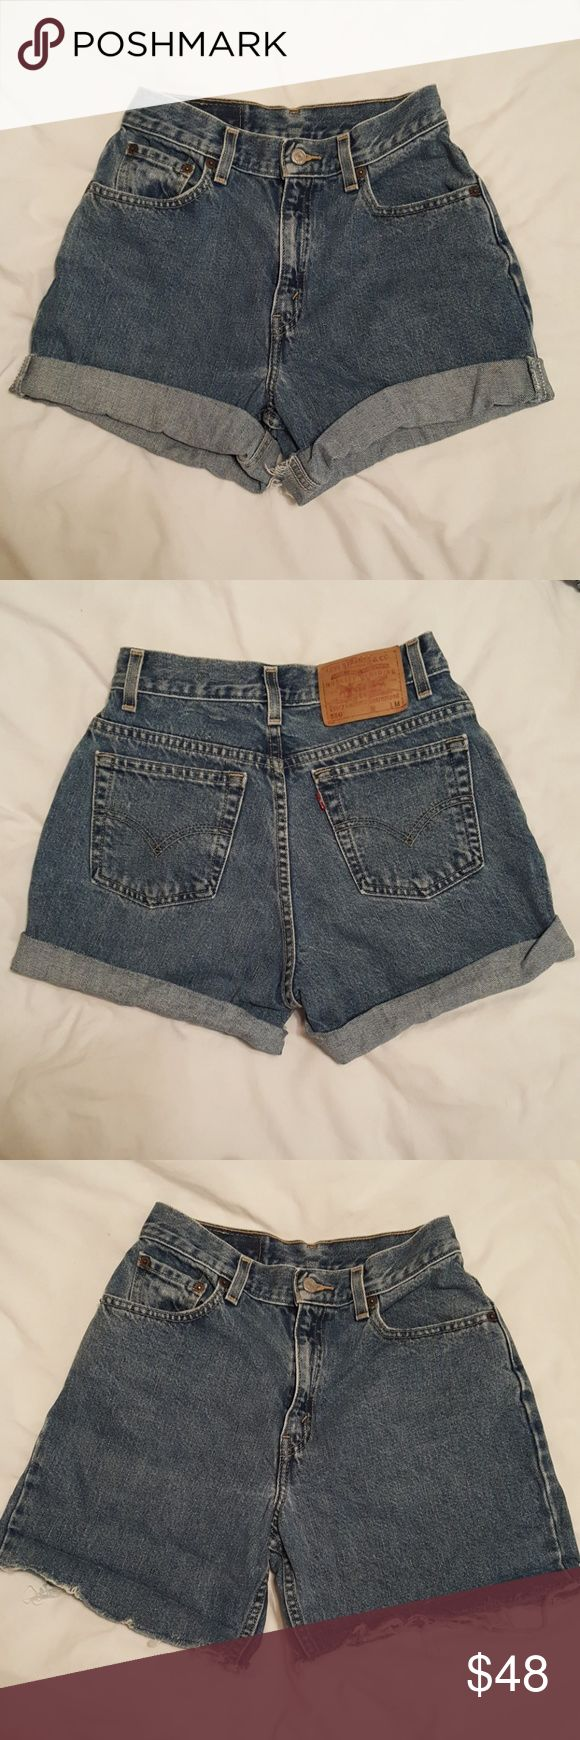 Levi's 550 High-Rise Shorts Levi's 550 High-Rise Shorts. Homemade, so you can roll up or unroll for the distressed look. Very good condition! So so flattering! Levi's Shorts Jean Shorts